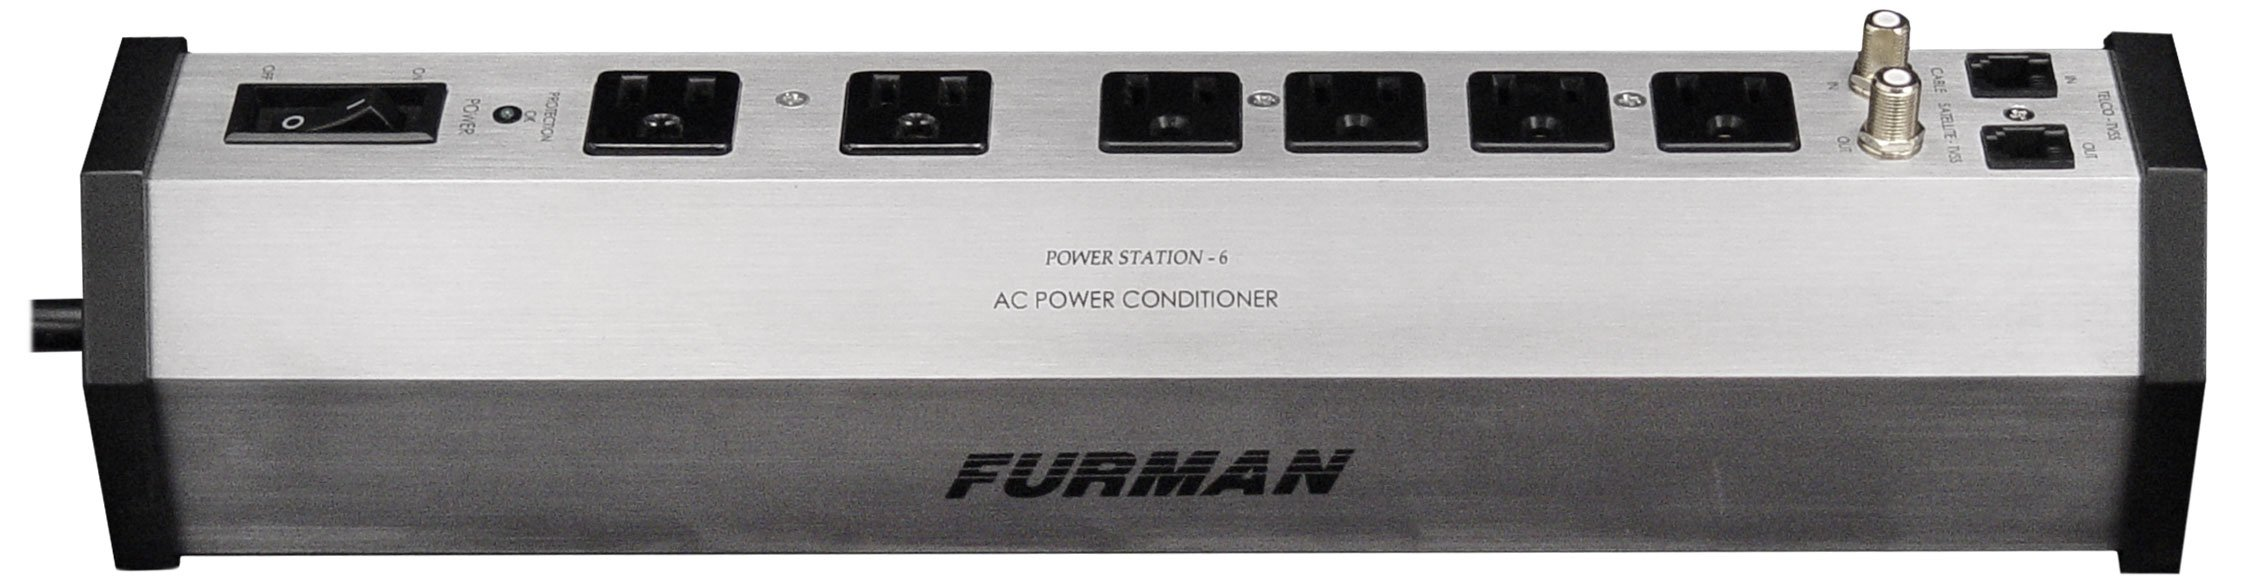 Furman PST-6 15-Amp Aluminum Chassis 6-Outlet Cable and Telco Protection Standard Level Power Conditioning by Furman